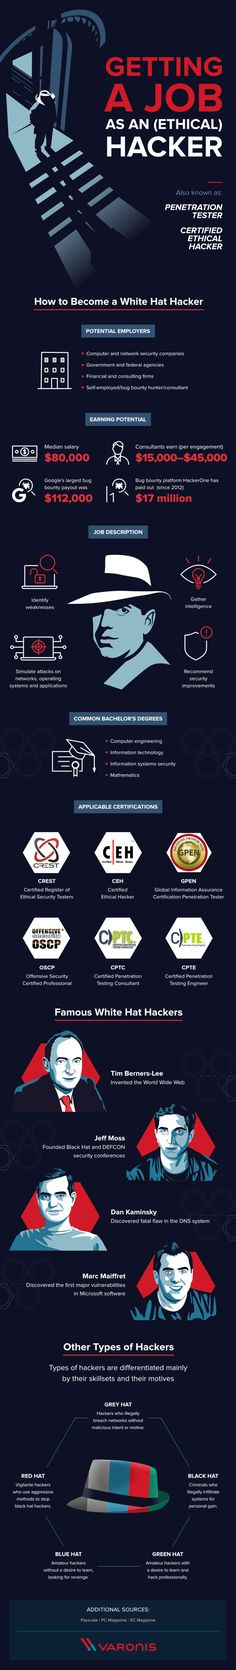 information technology - What Does it Take to Be an Ethical Hacker infographic Computer Forensics, Computer Coding, Computer Programming, Technology Hacks, Computer Technology, Computer Science, Technology Timeline, Hacking Books, Computer Shortcut Keys